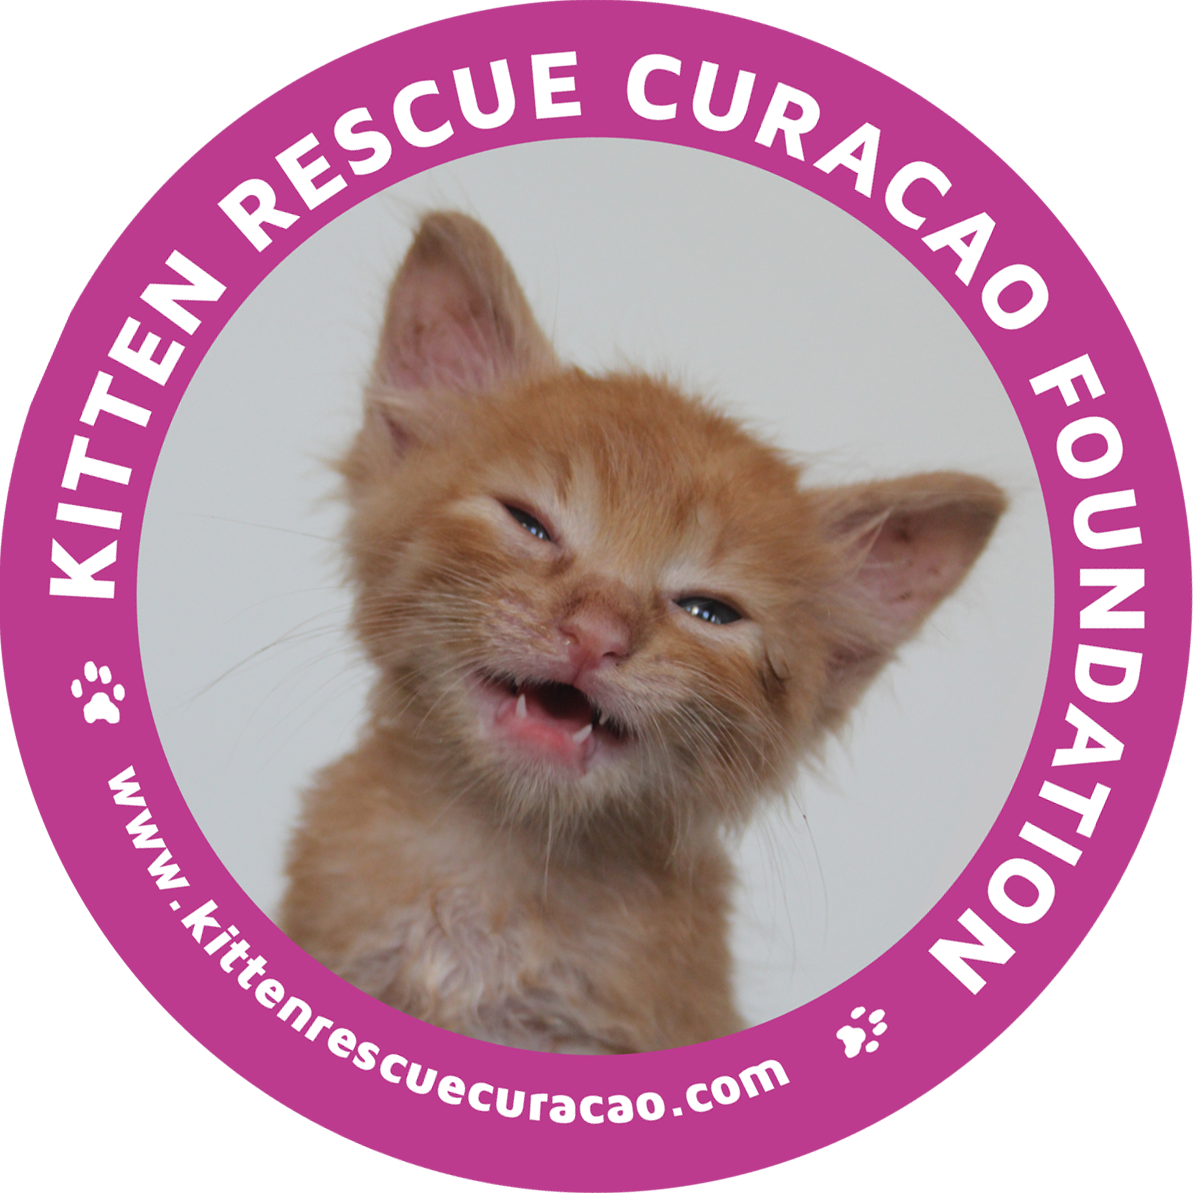 Kitten Rescue Curacao